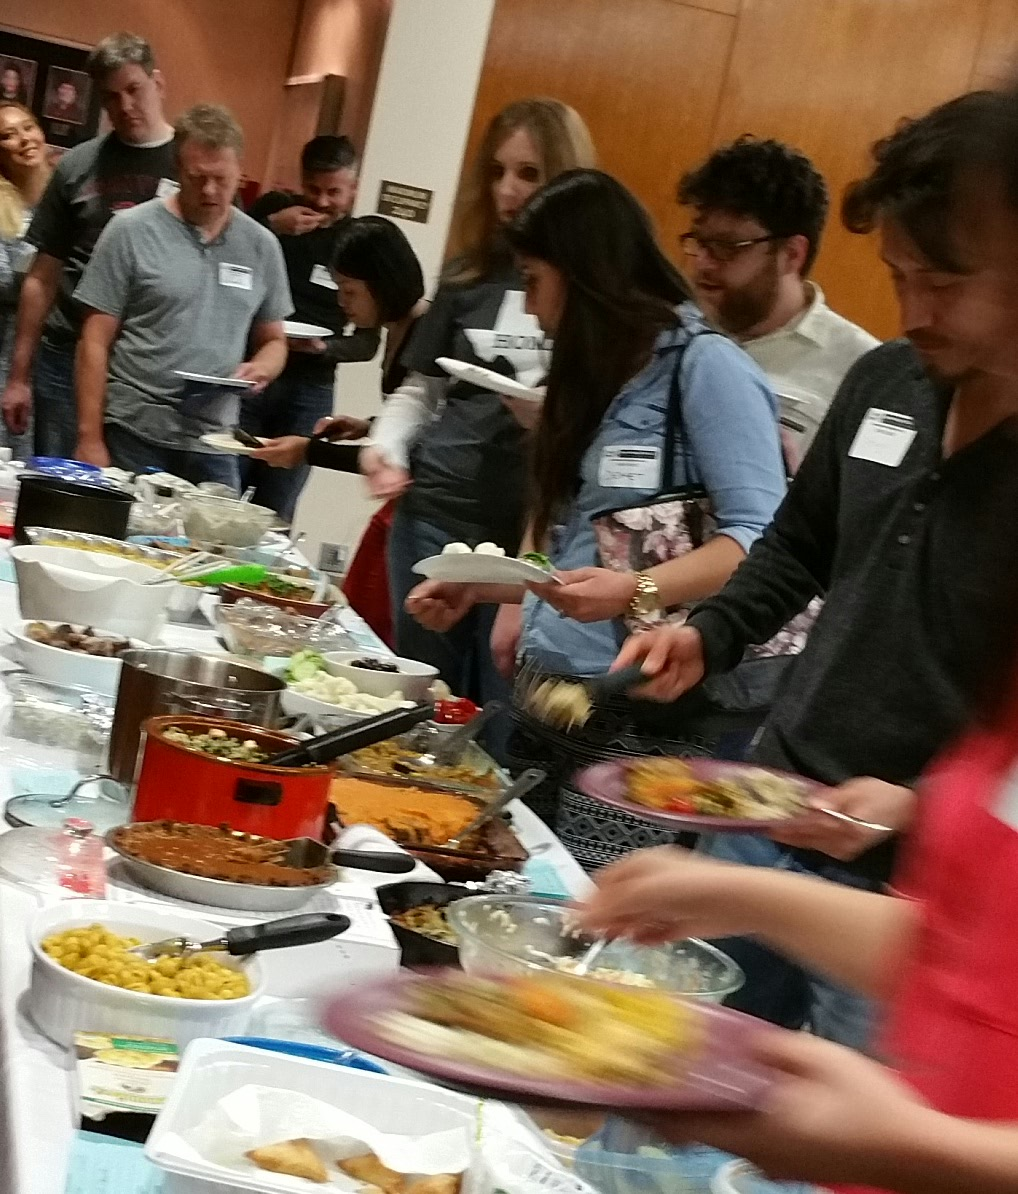 Vegan Society of PEACE 2nd Saturdays Potluck